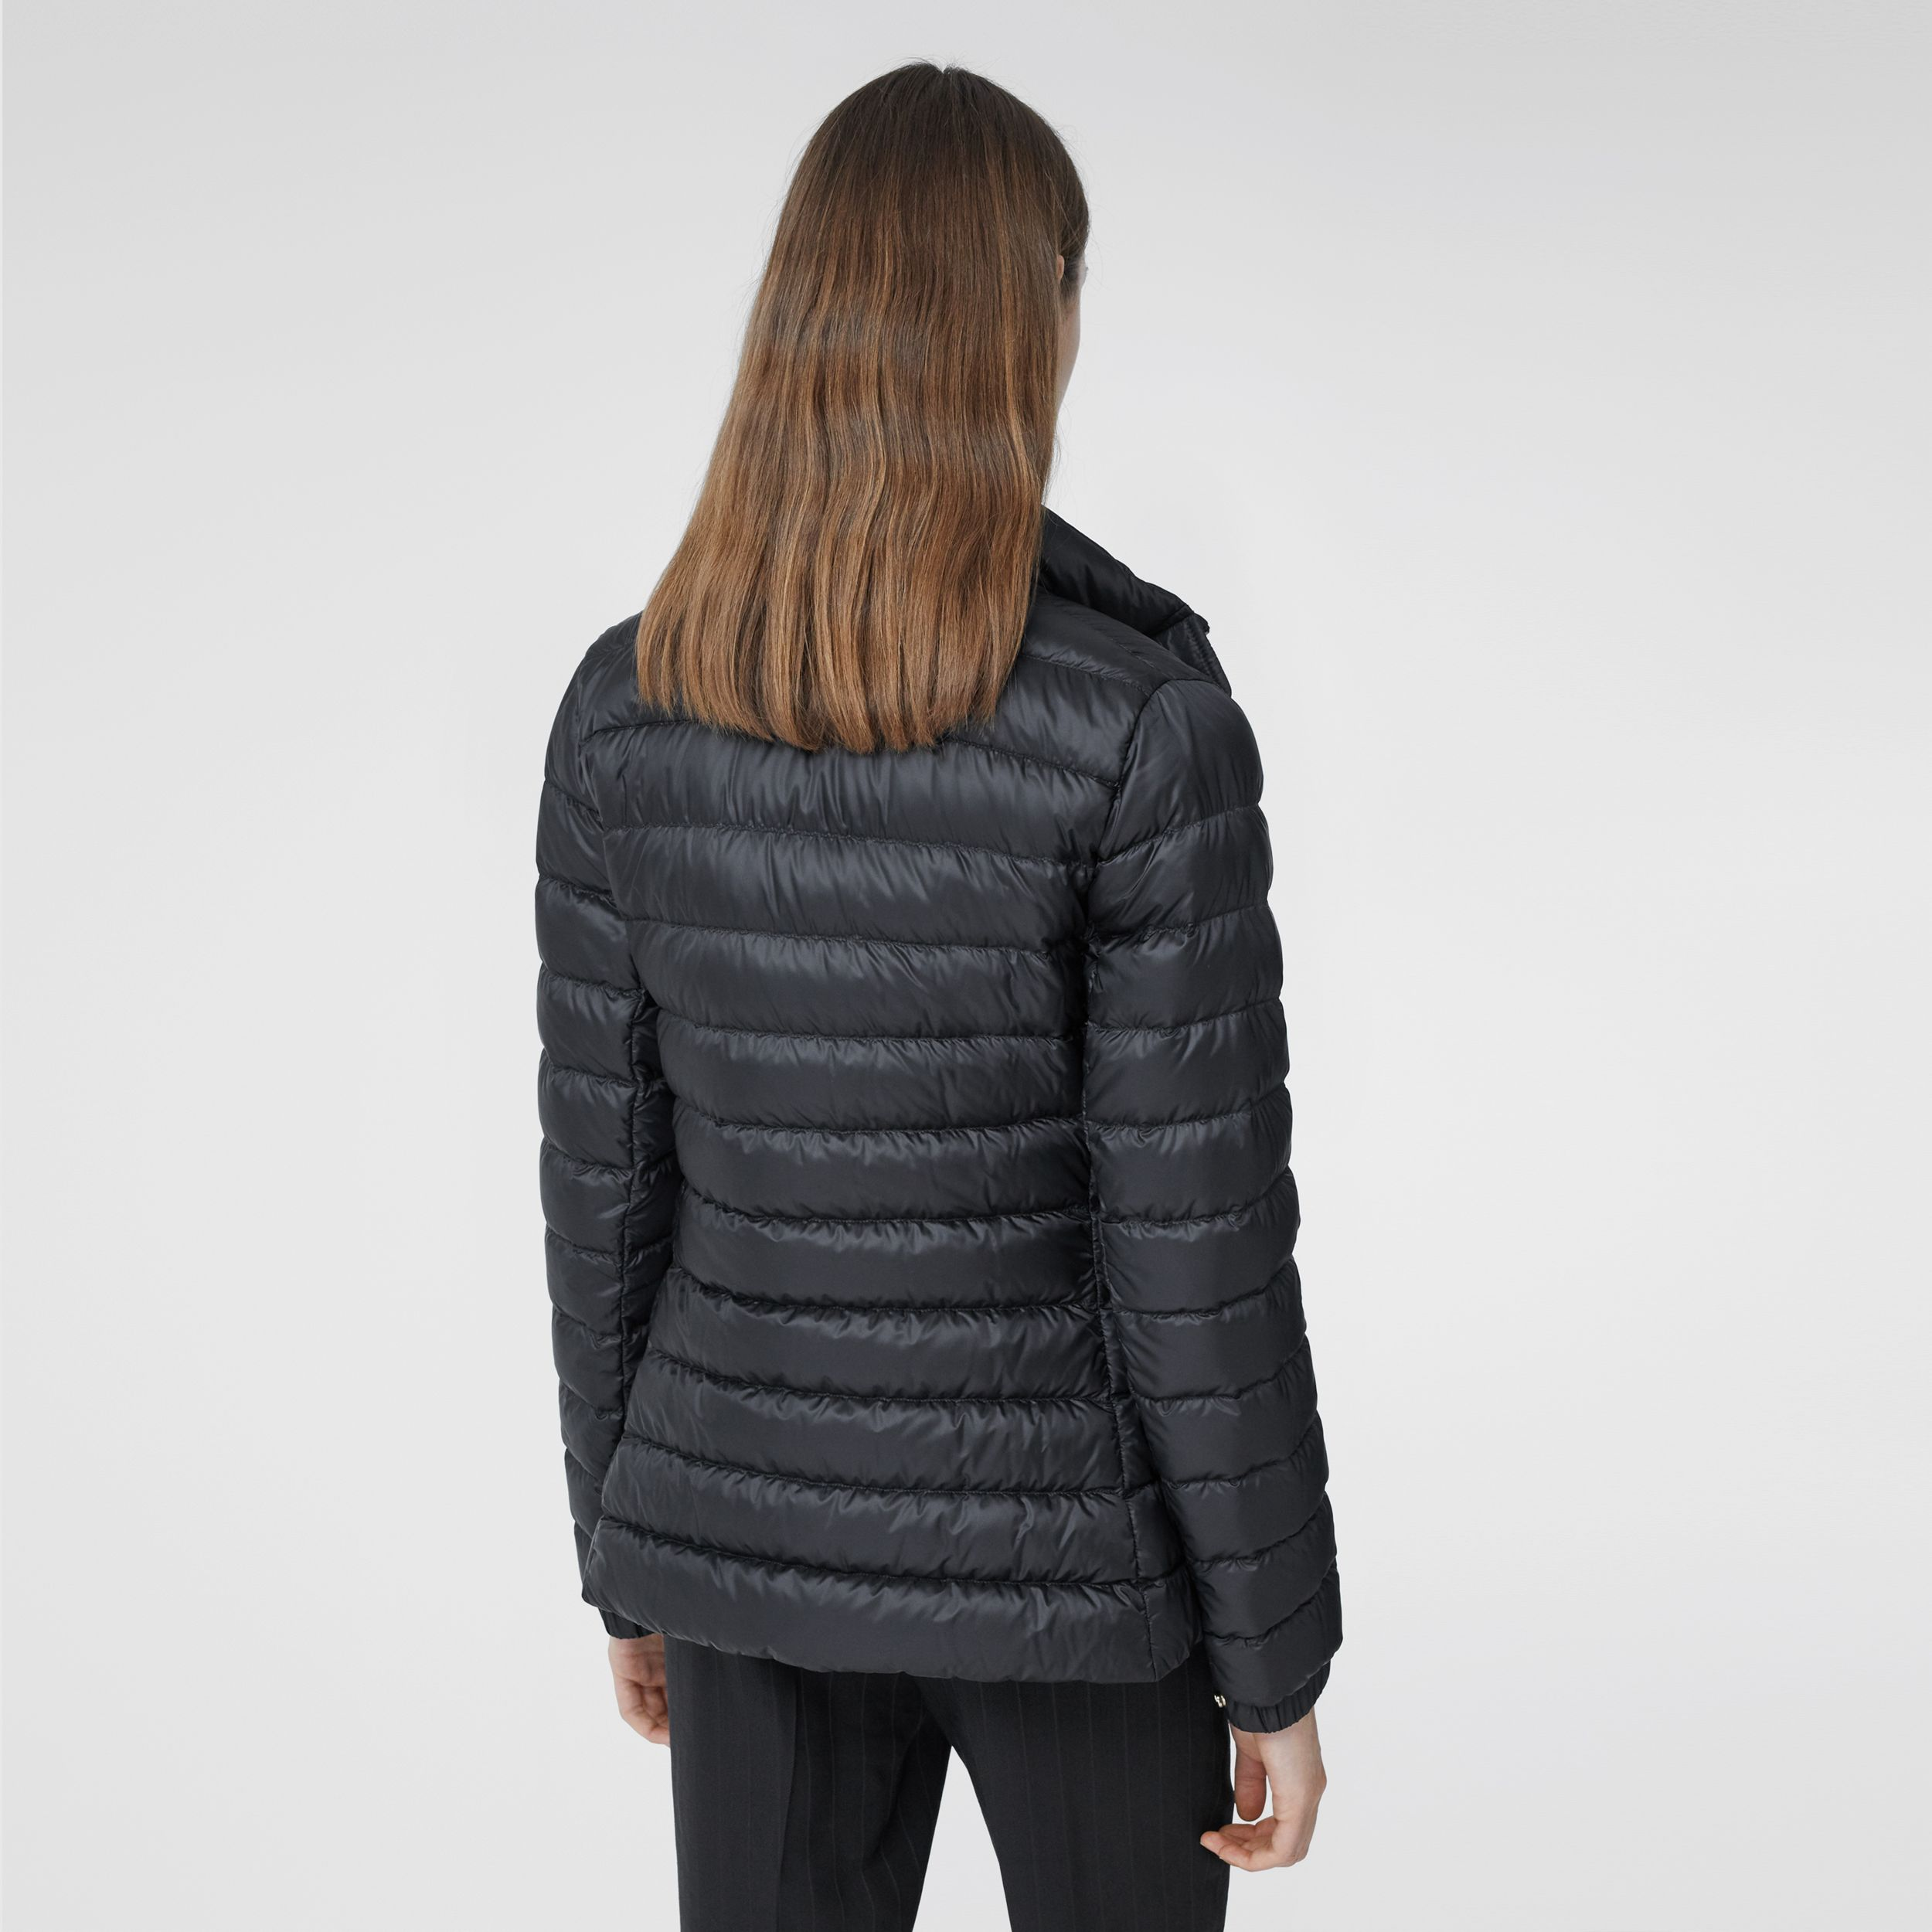 Monogram Print-lined Lightweight Puffer Jacket in Black - Women | Burberry - 3